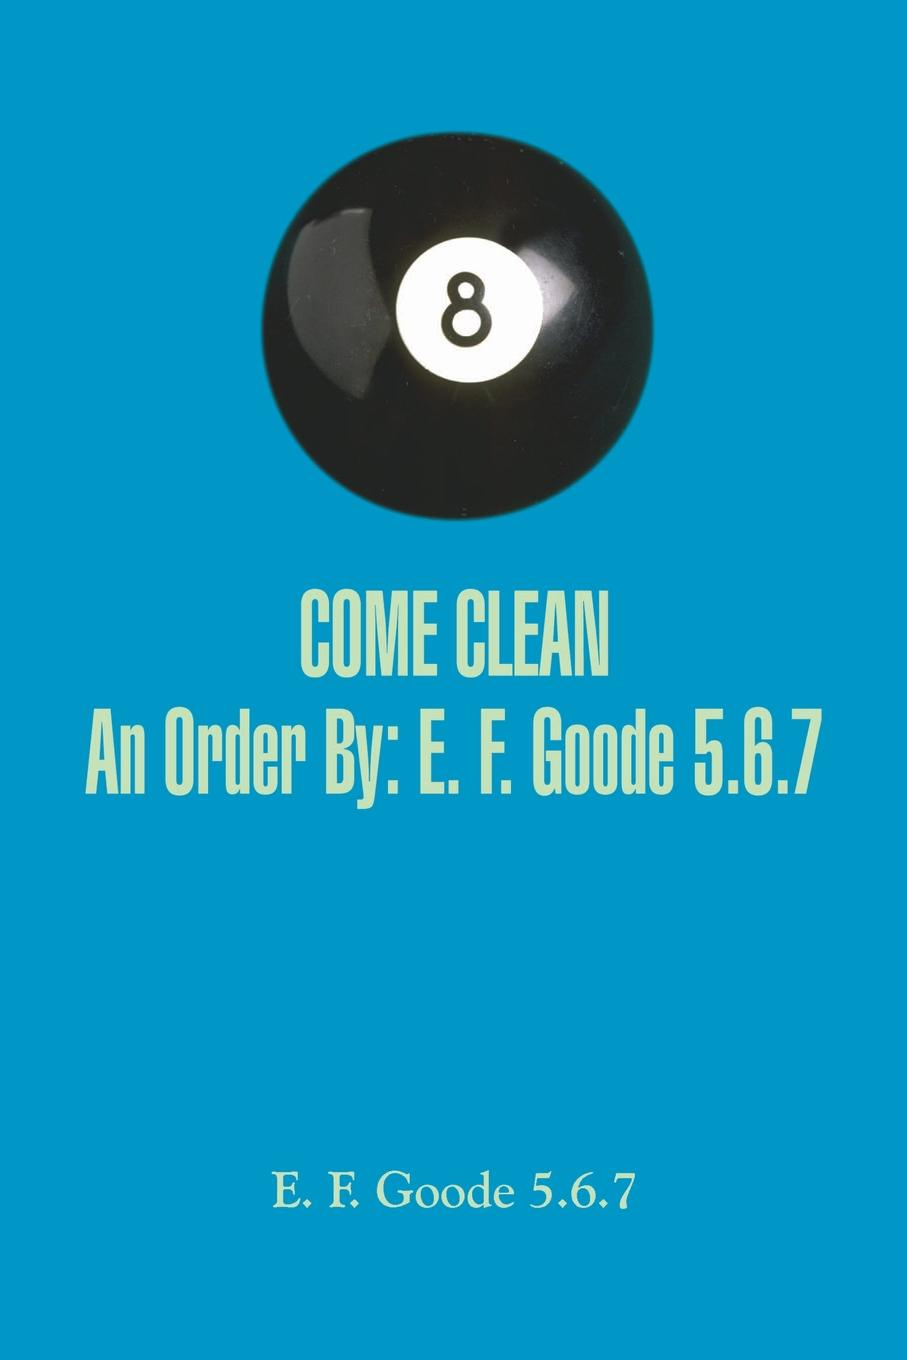 E. F. Goode 5.6.7 COME CLEAN An Order By. E. F. Goode 5.6.7 цена